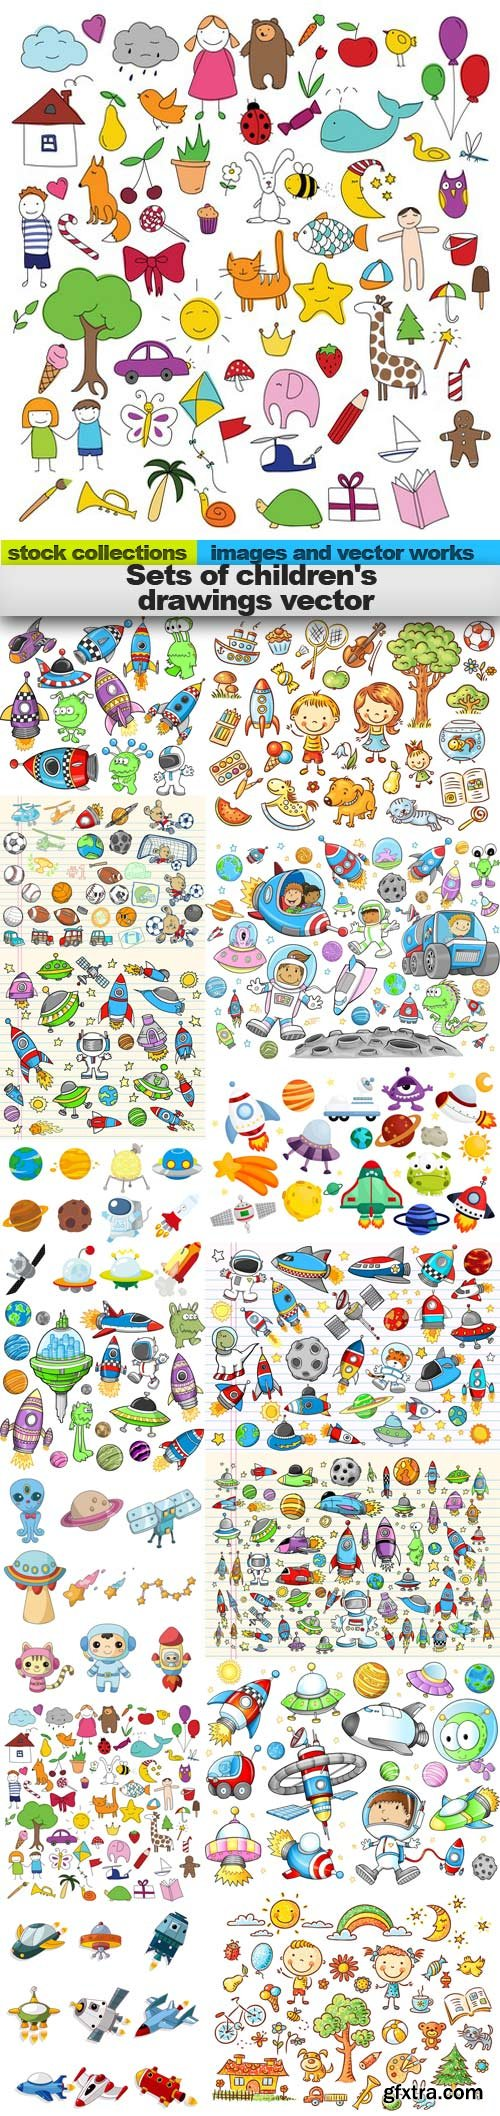 Sets of children's drawings vector, 15 x EPS